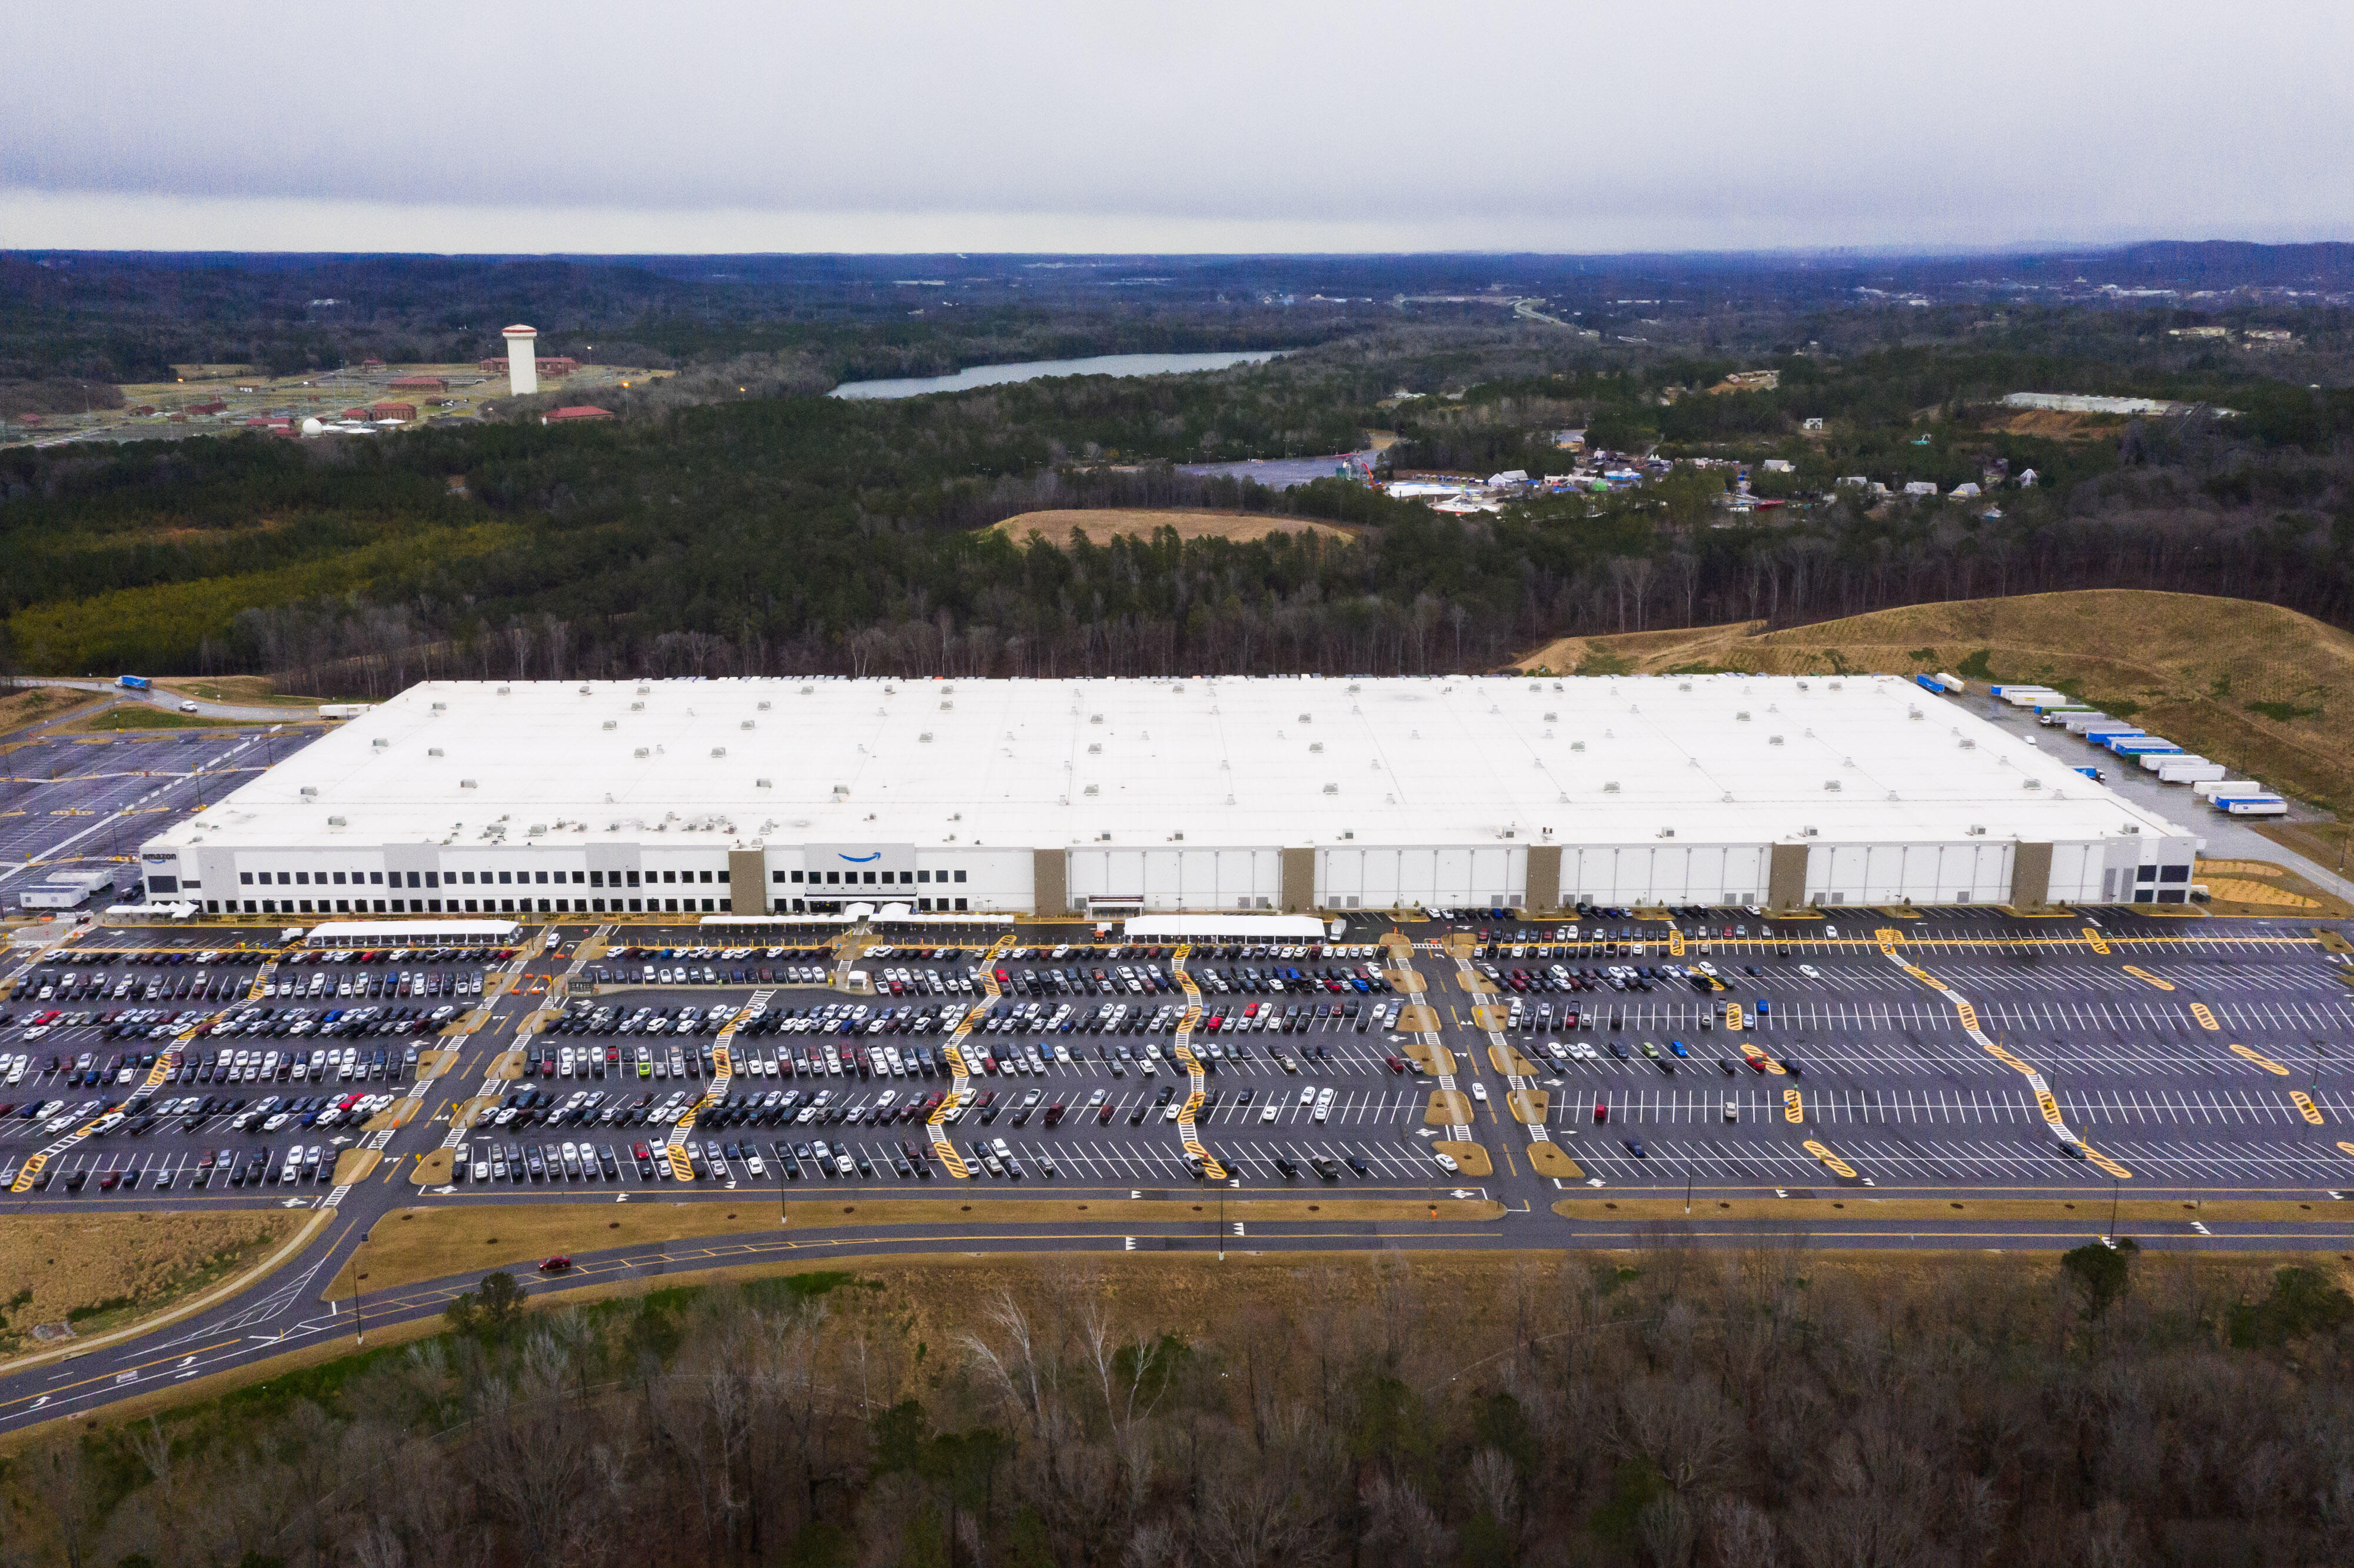 Aerial view of the Amazon warehouse in Bessemer, Alabama